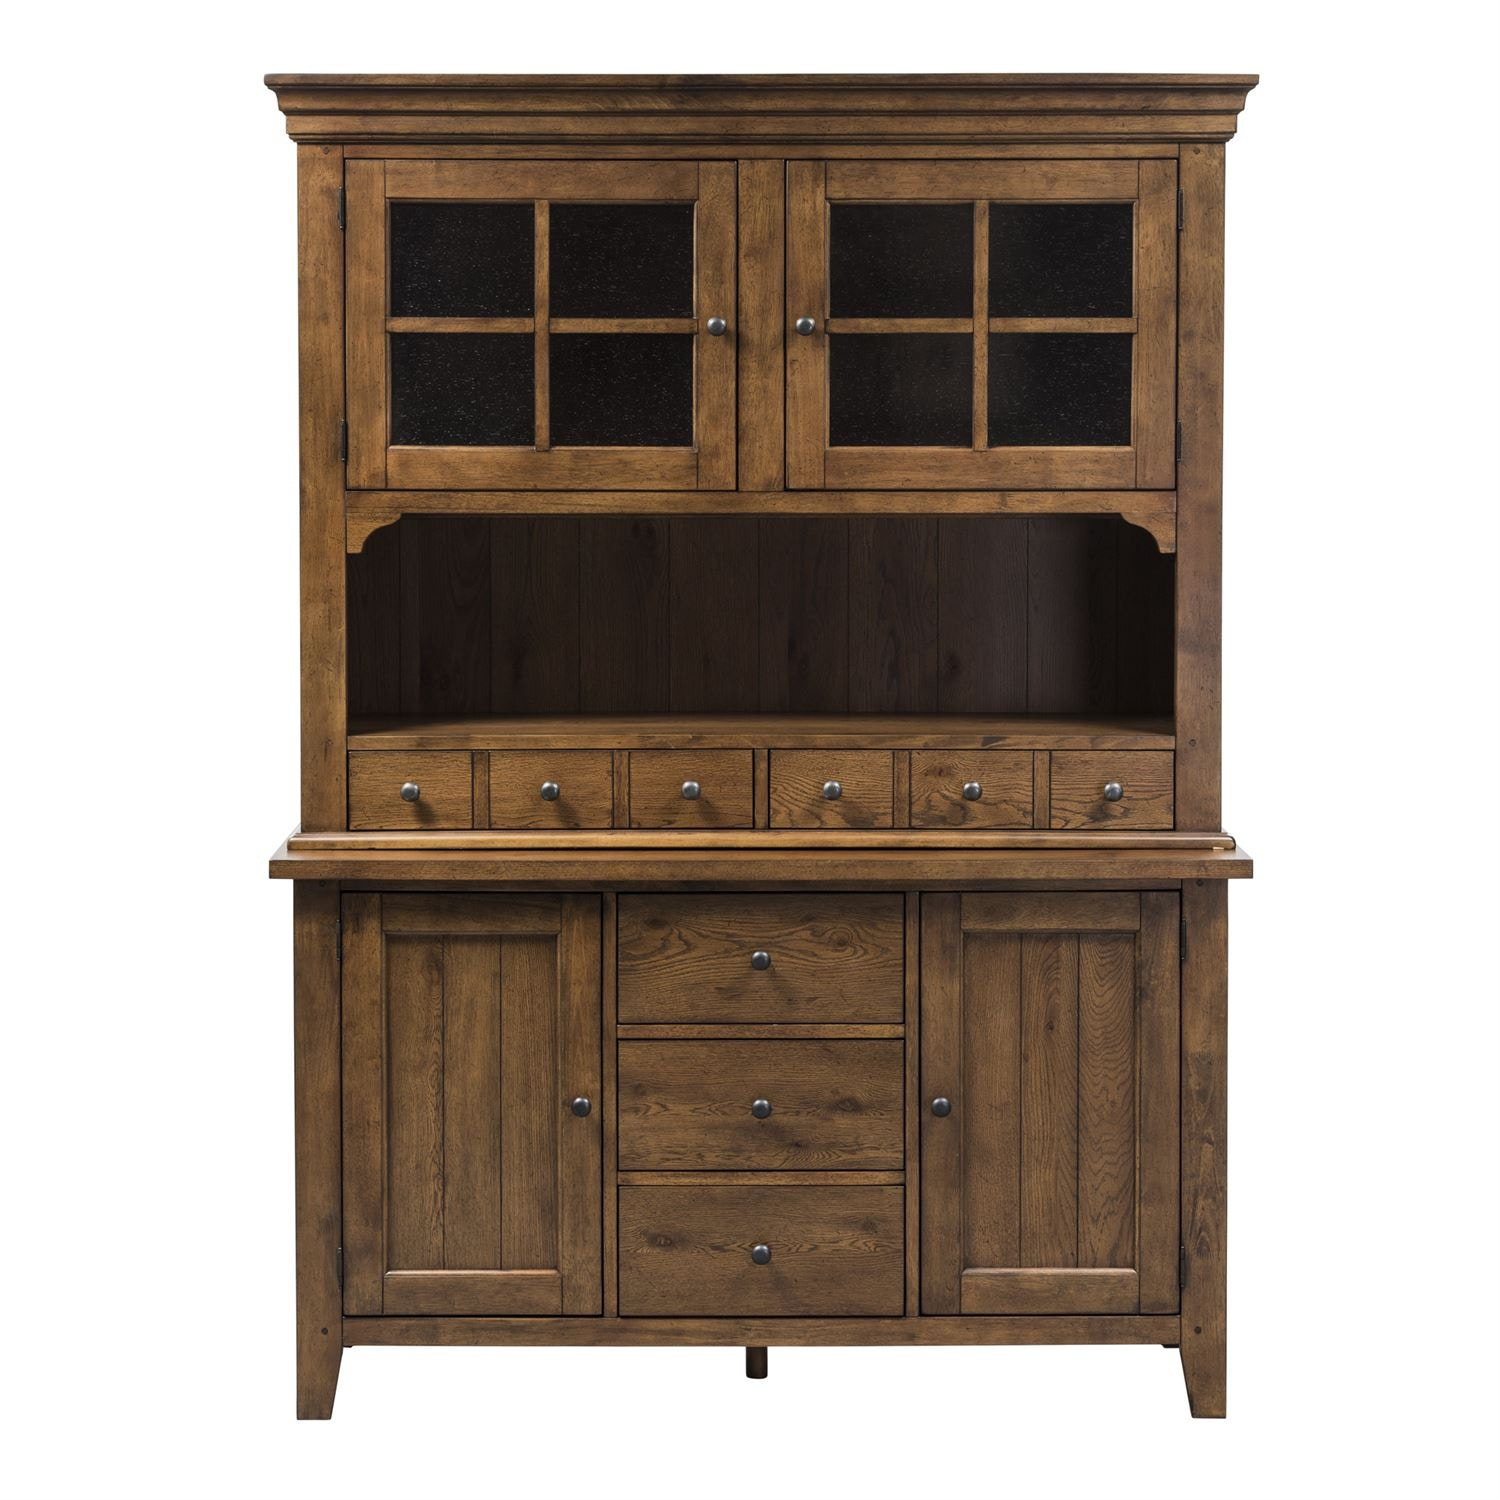 Liberty Furniture Dining Room Buffet 382 CB6183 At Haynes Brothers